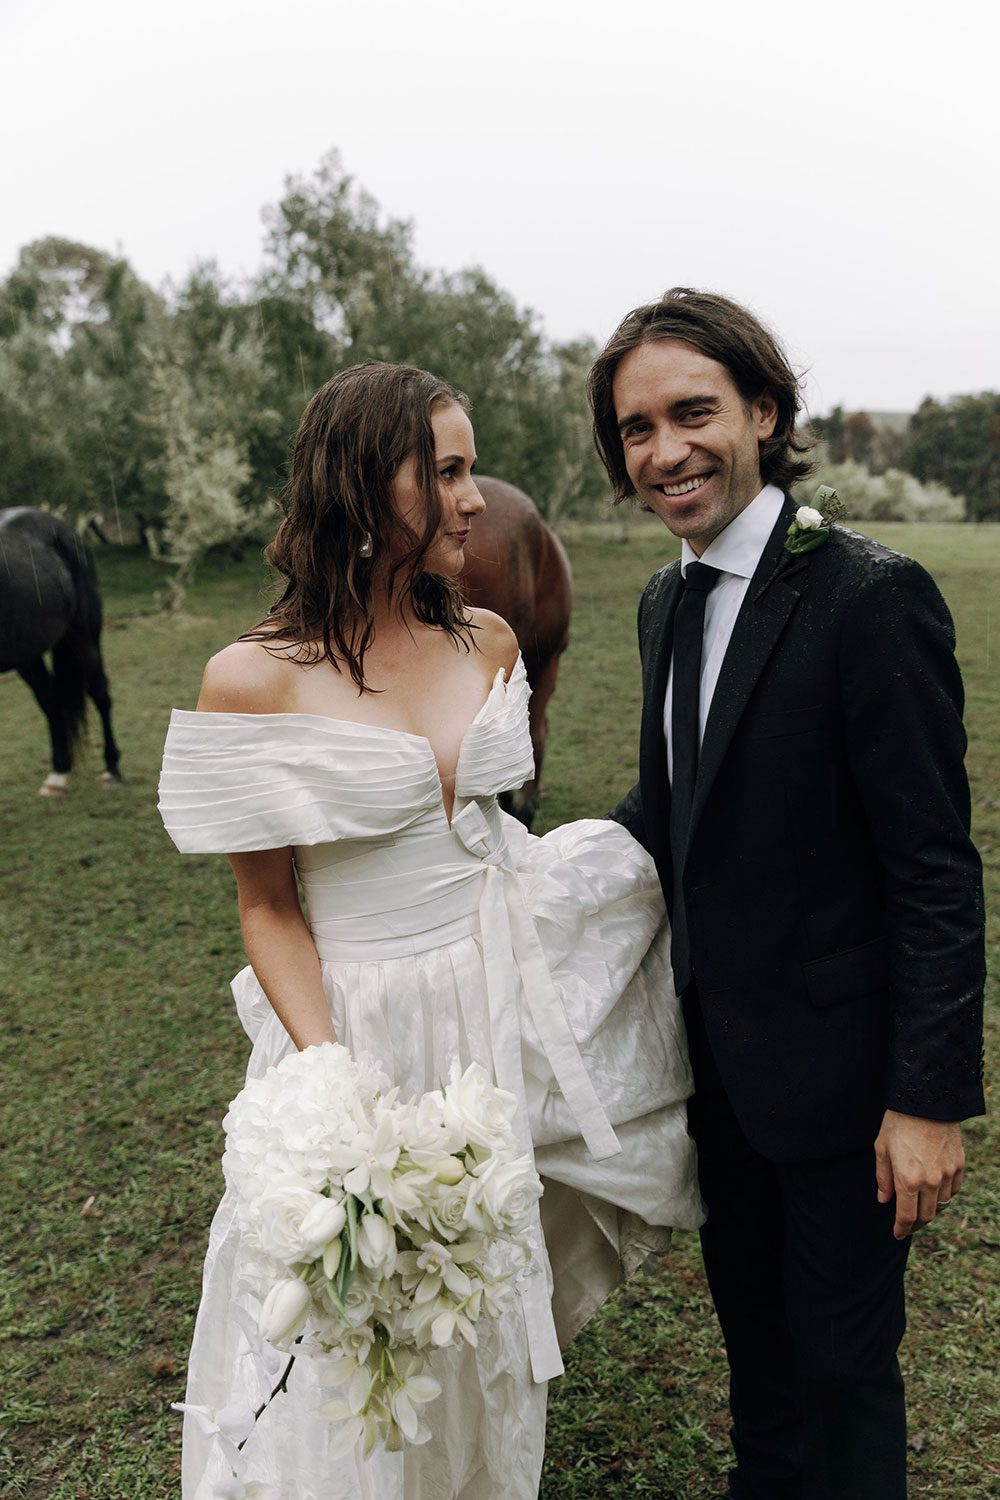 Bride wearing bespoke off shoulder bodice made with silk dupion and long train by NZ wedding dress maker Vinka Designs - with groom in field with horses